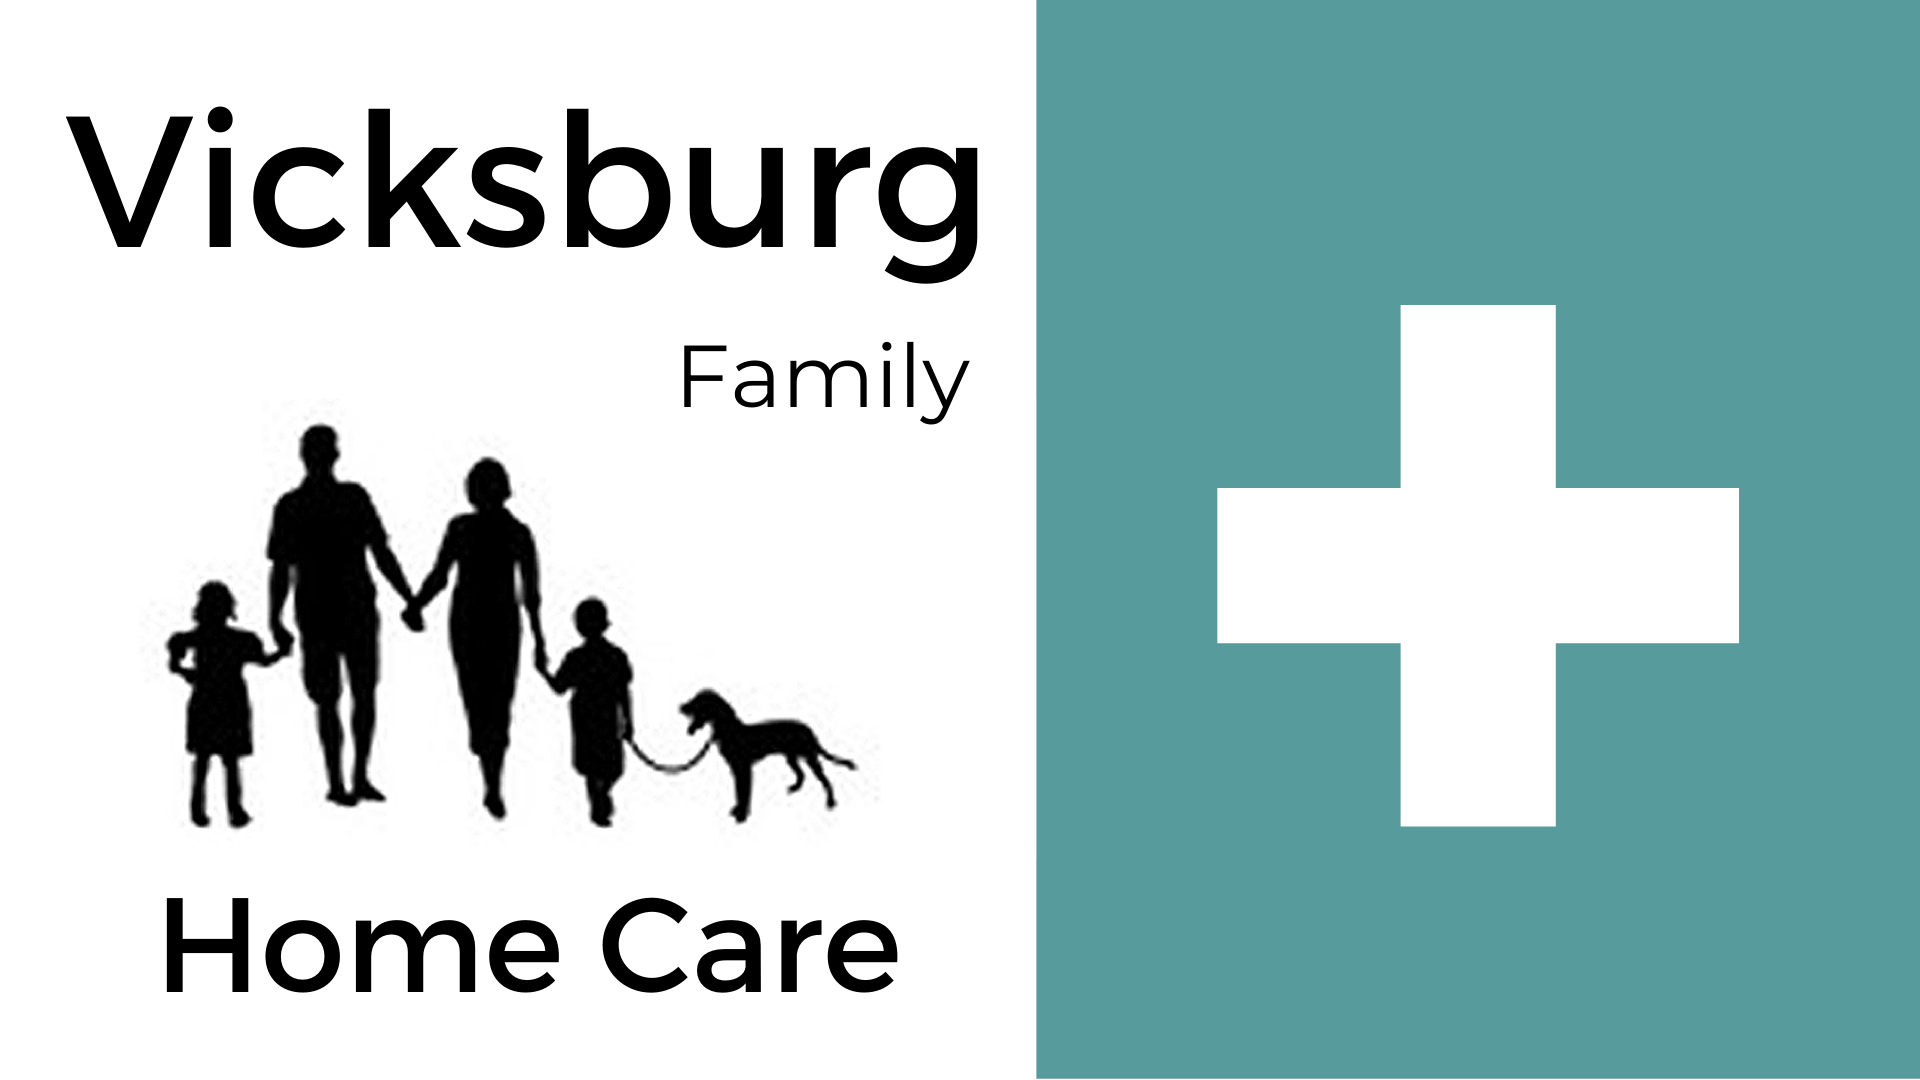 Vicksburg Family Home Care 2